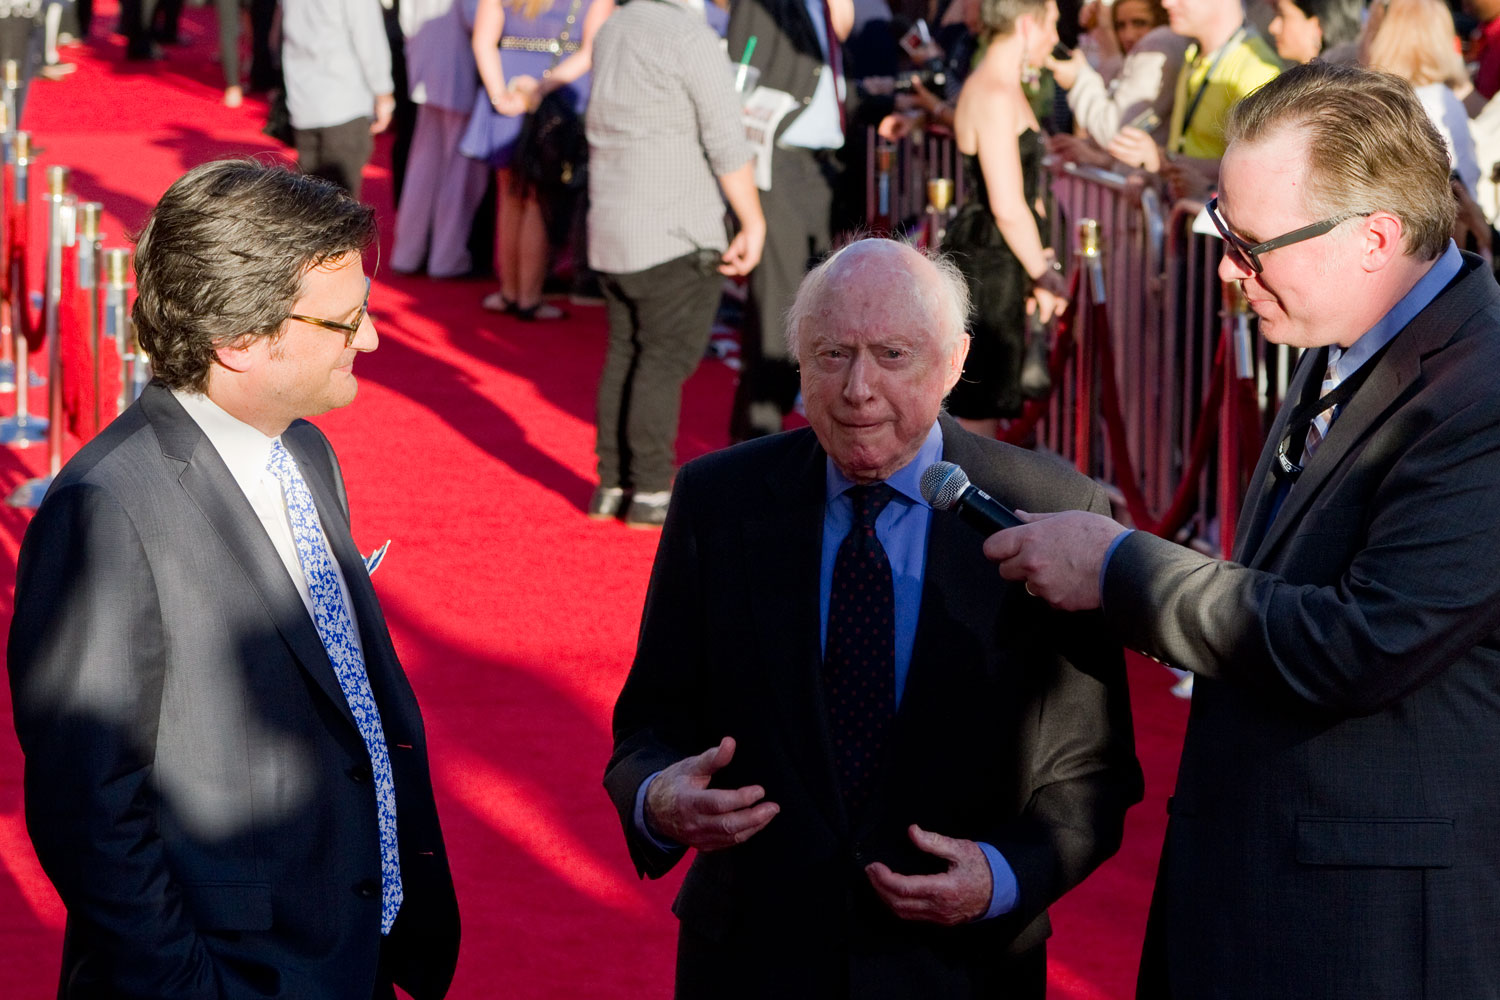 Norman Lloyd and Ben Mankiewicz TCM Film Festival